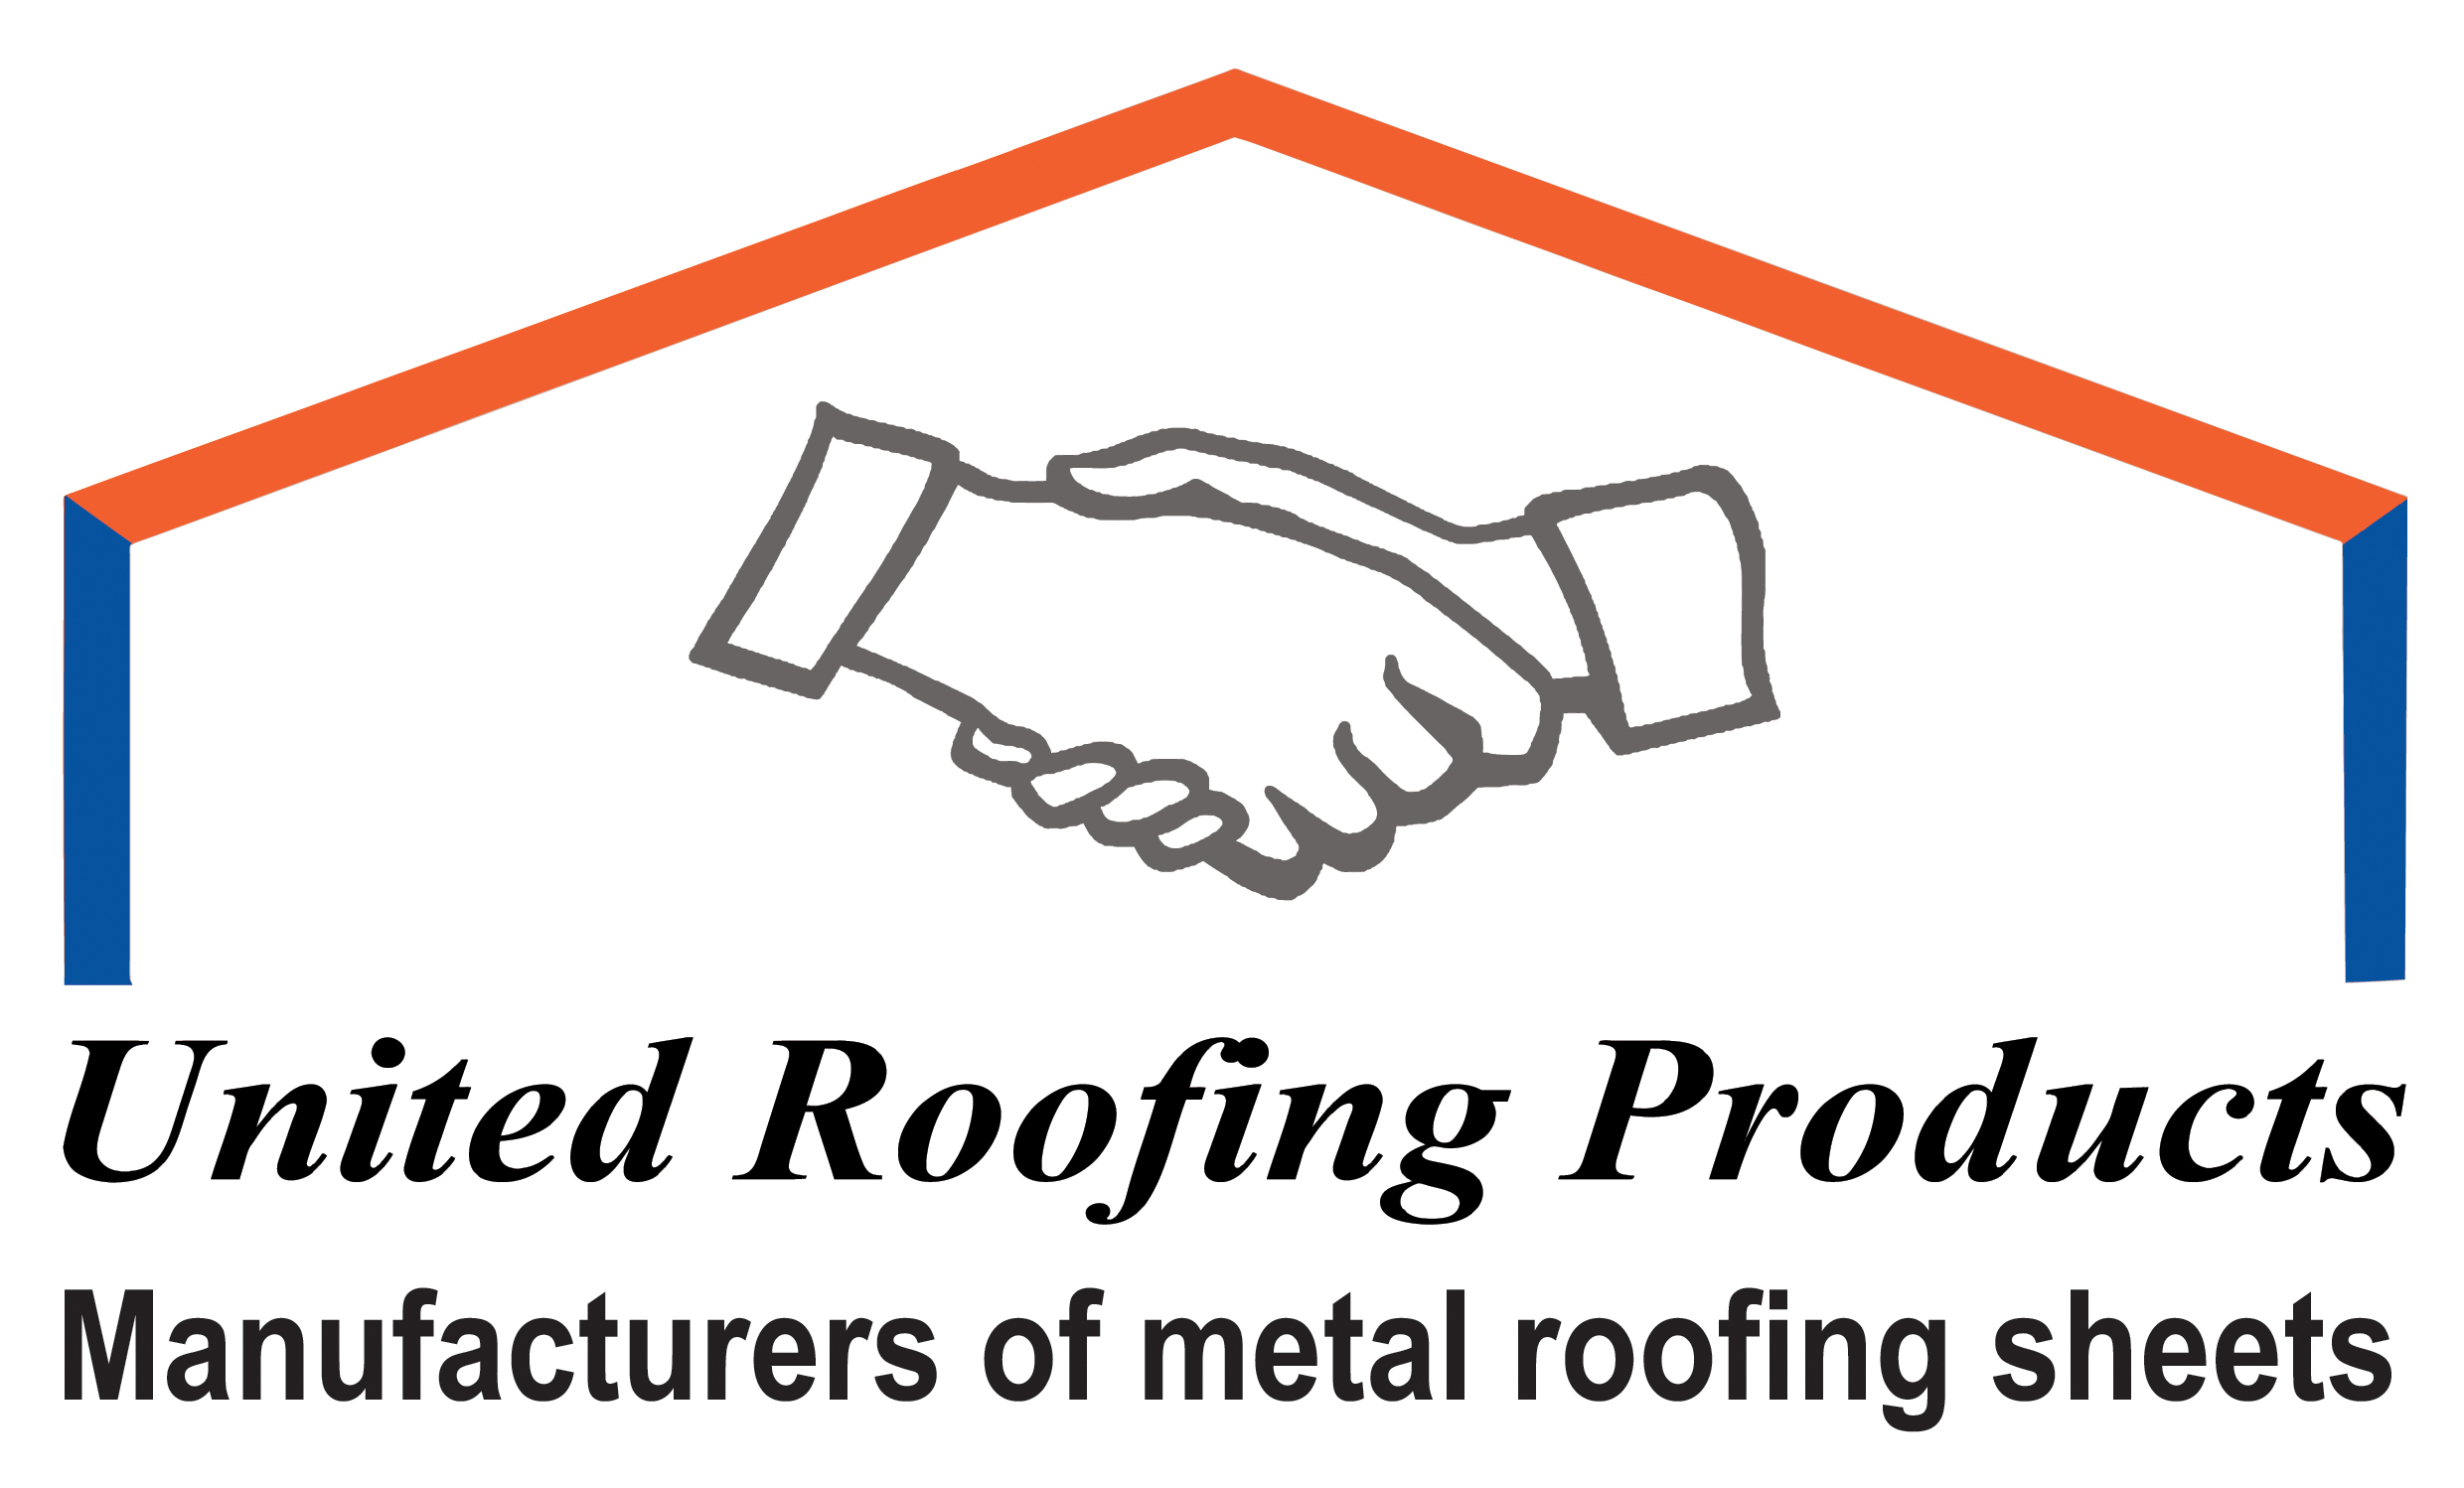 United Roofing Products